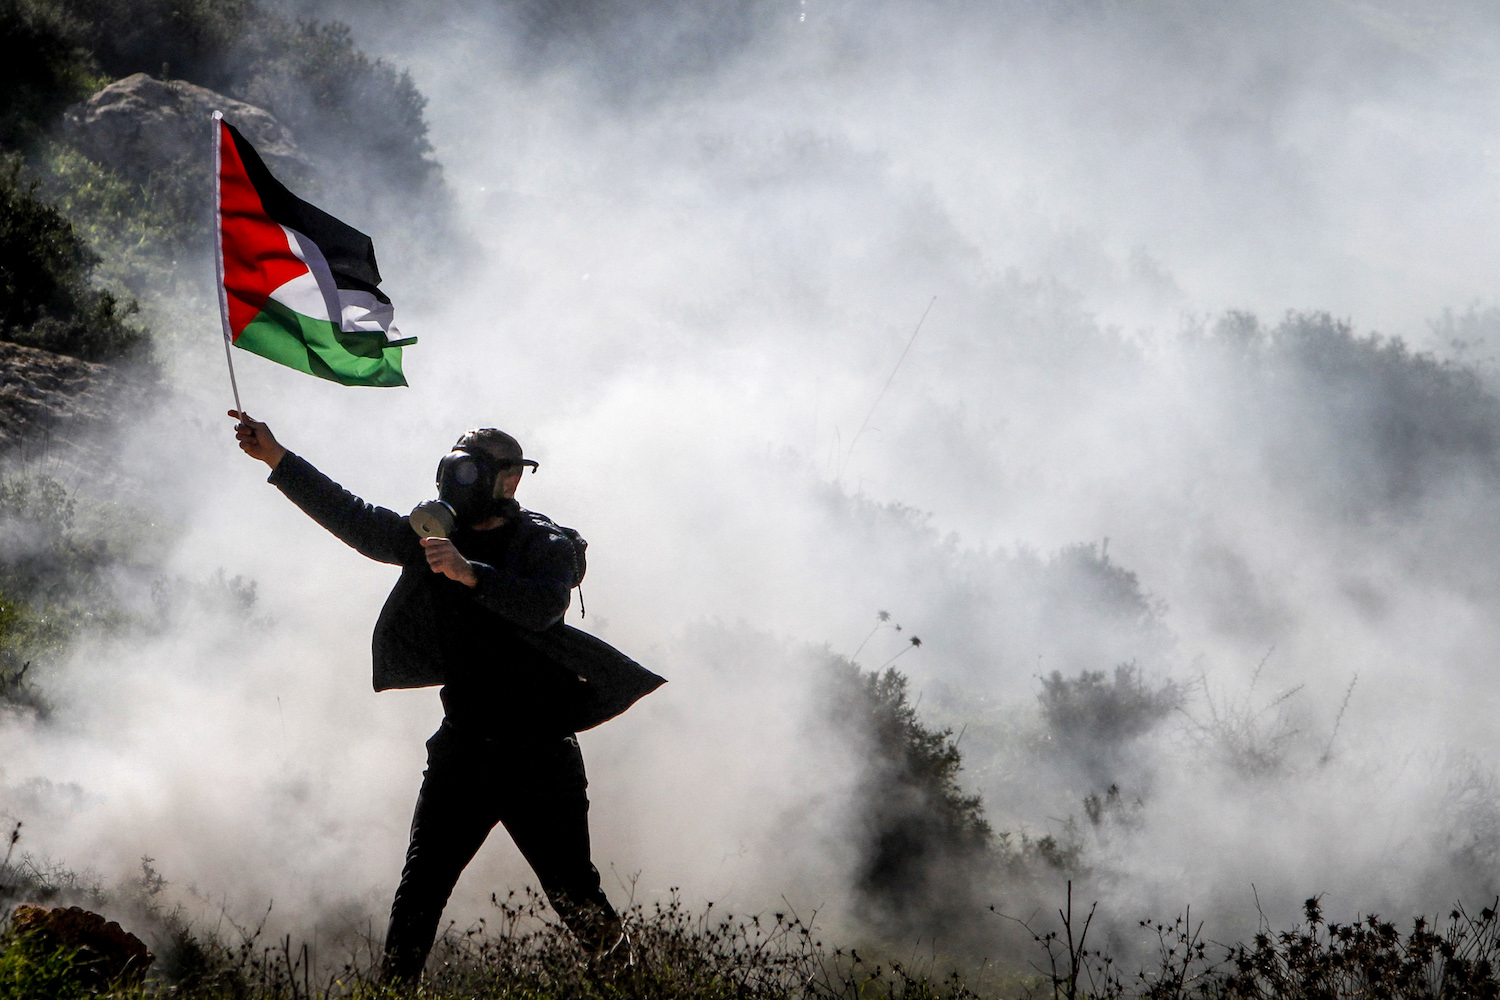 Palestinians are tear gassed by Israeli security forces during a protest in the village of Beit Dajan, near Nablus, January 22, 2021. (Nasser Ishtayeh/Flash90)